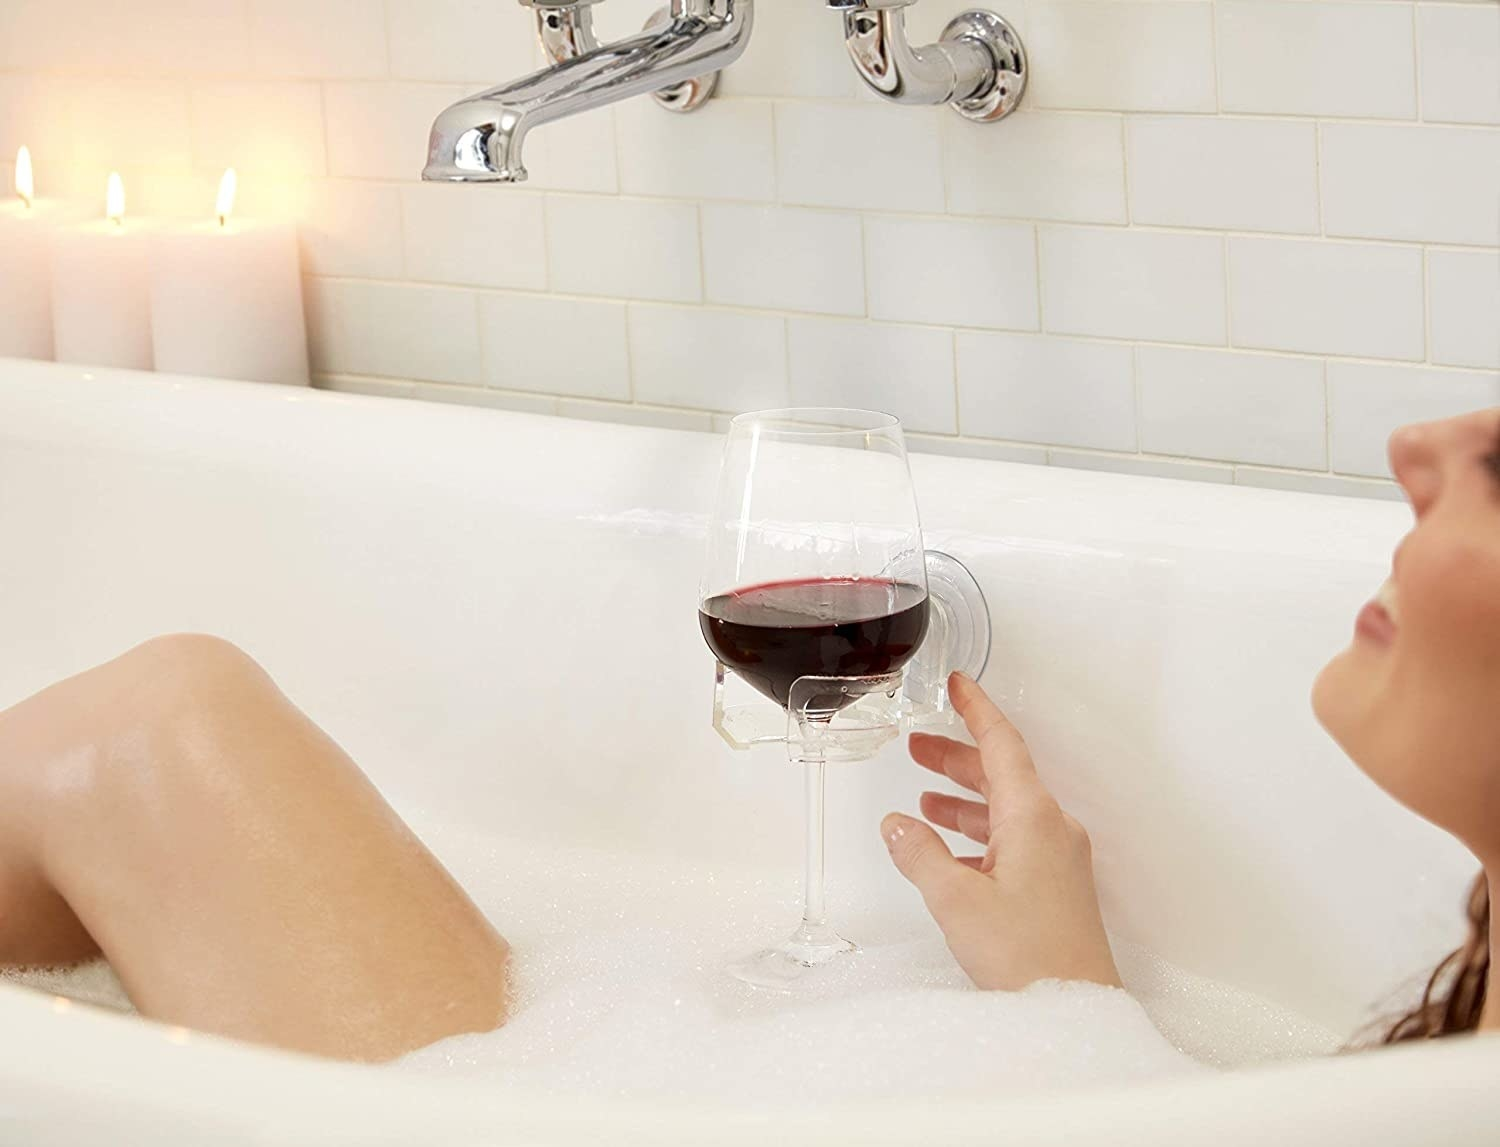 A person sitting in a tub with a wine glass in the caddy